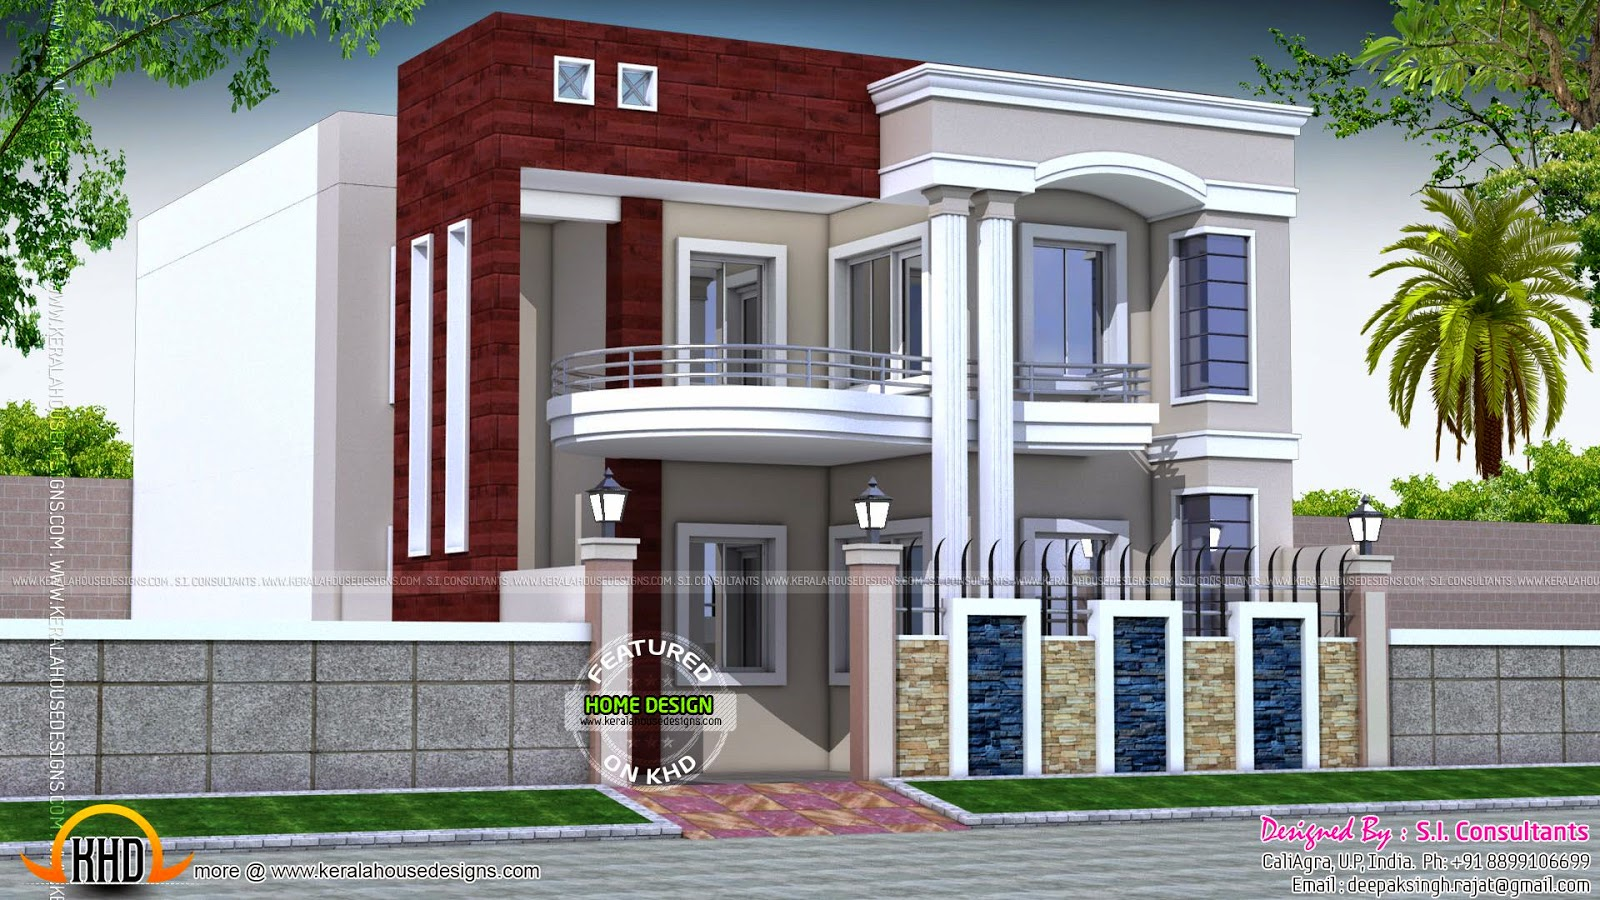 House design in north india kerala home design and floor New home designs in india